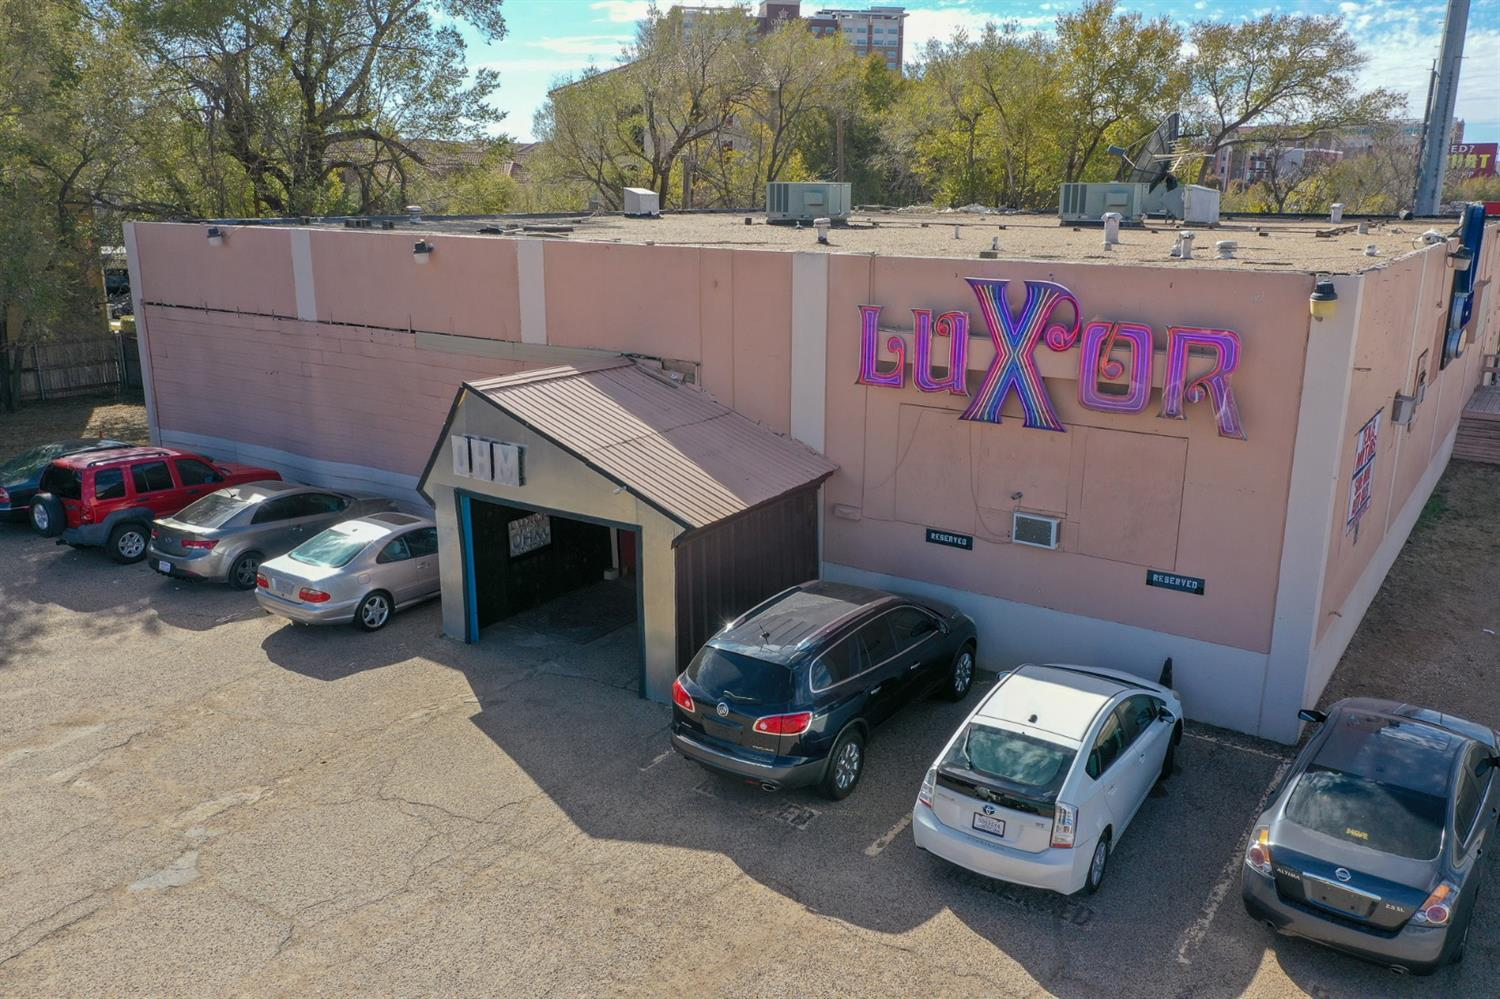 Long-time Lubbock nightclub in Overton Park on US 62/82 is now available! Sitting on almost an acre with nearly 350 feet of US 62/82 (Marsha Sharp Freeway) frontage this property is ideal for multiple uses. Currently operated as a nightclub, this property has everything for someone looking to purchase for entertainment or club/bar. From the iconic lighted dance floor to the large elevated DJ booth, this is one of the most technically advanced and well-known clubs in the region. The property boasts 3 separate bars, 6 bar stations, separate VIP lounge downstairs with separate entrance, lighted staircase, green room/dressing room, raised platforms with poles, tons of storage, three 10-ton HVAC units, and an owned POS system. With almost an acre of paved land and the building set to the far west, this property is also perfect for other commercial uses of expansion or redevelopment including retail, multi-family, or student housing. Currently zoned Interstate Highway commercial.